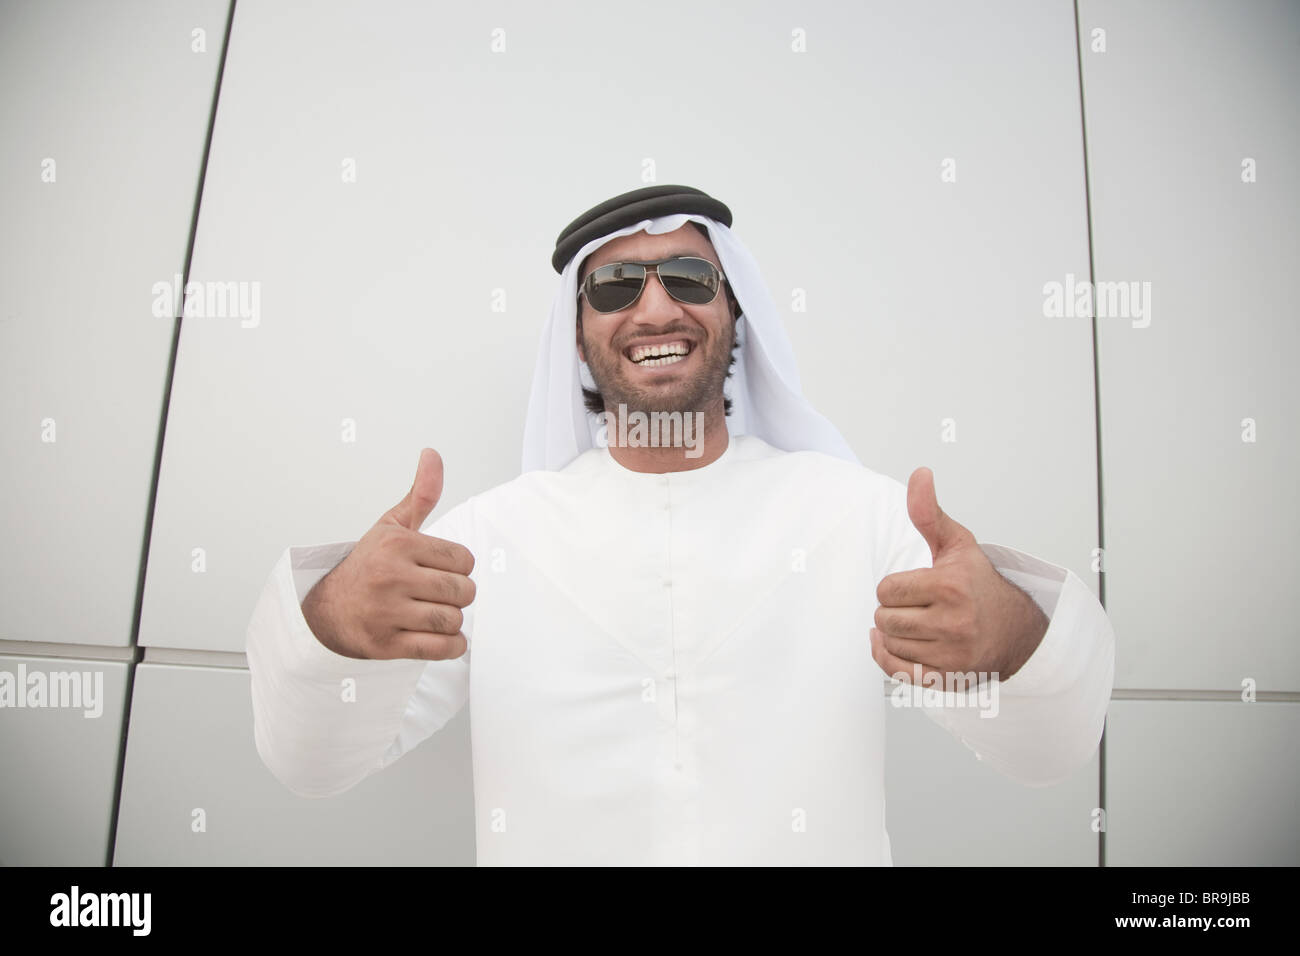 Middle eastern man giving thumbs up sign - Stock Image